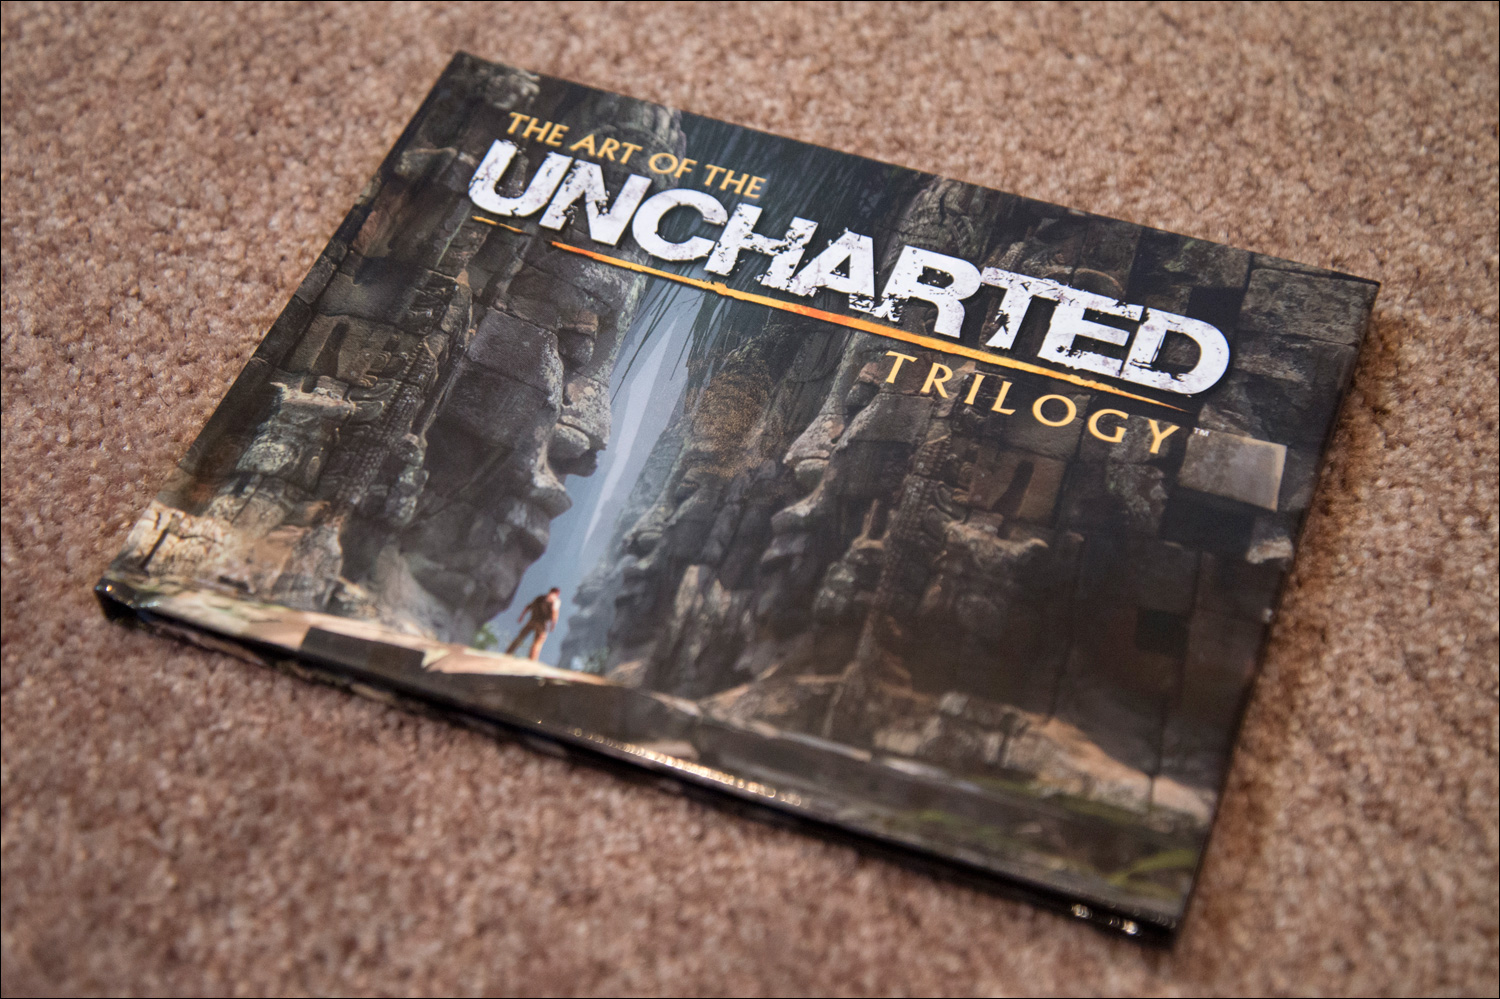 The-Art-of-the-Uncharted-Trilogy